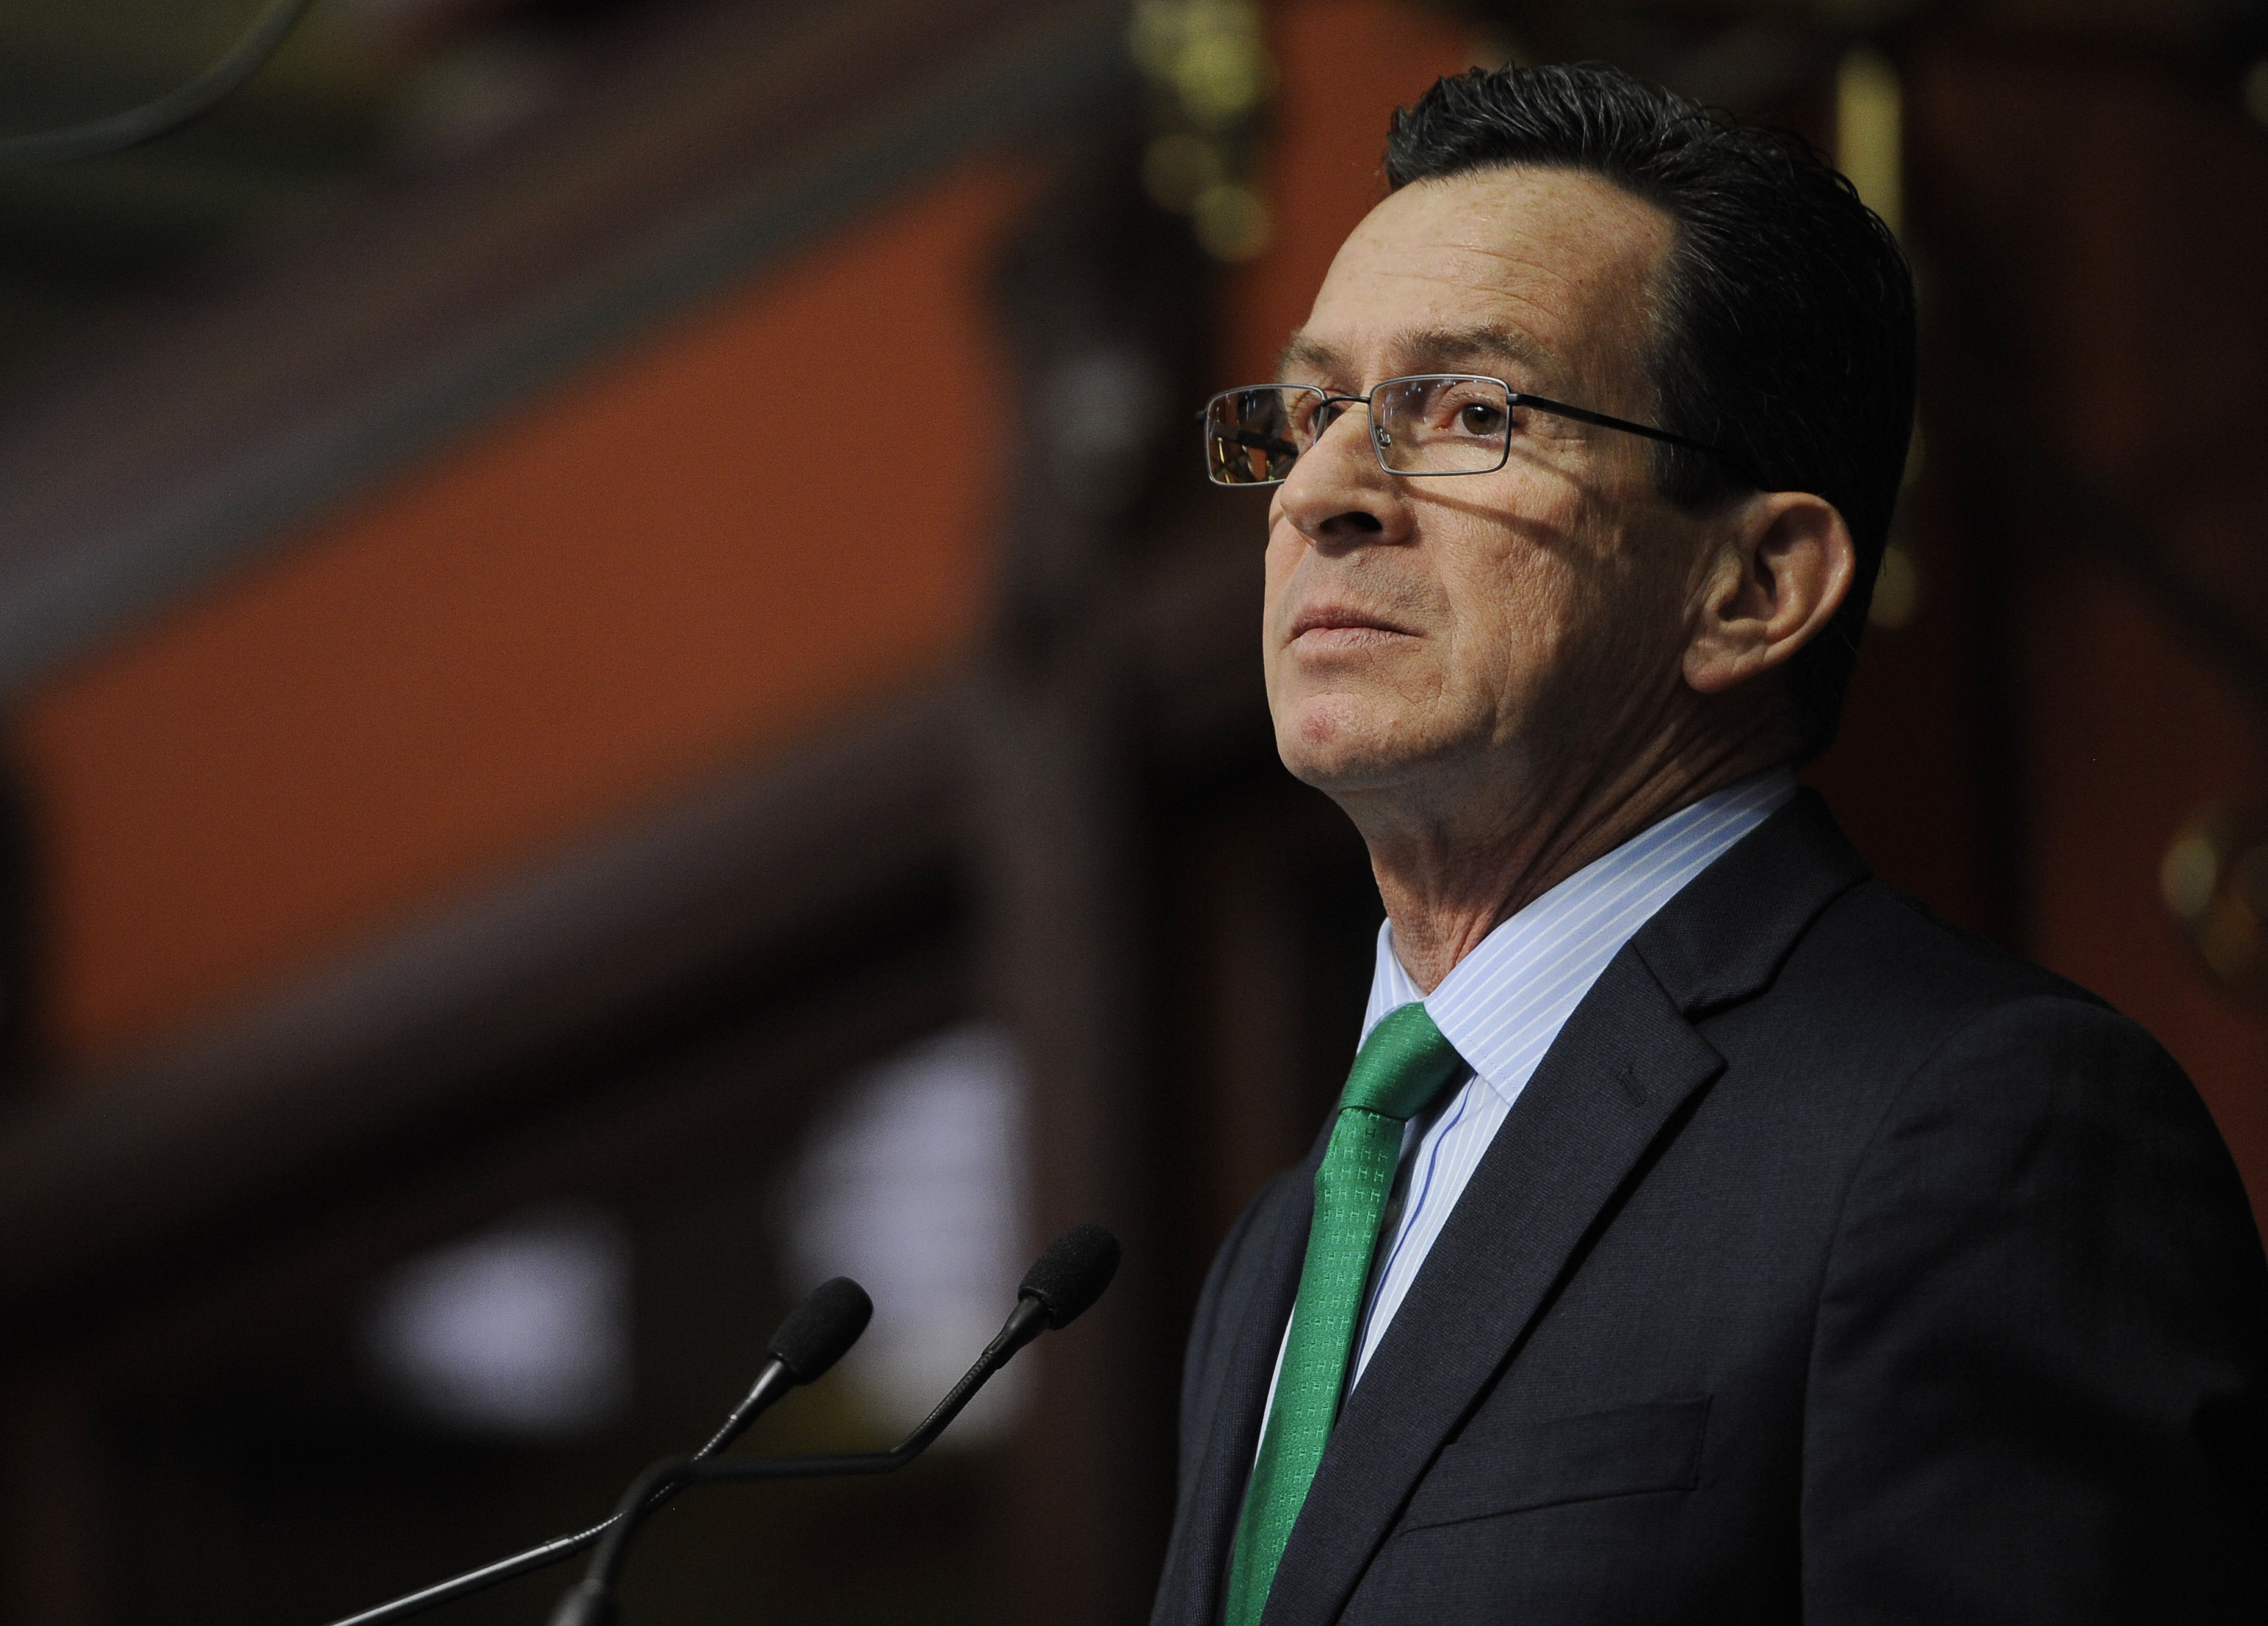 Dannel Malloy at the State Capitol on Feb. 18, 2015, in Hartford, Conn.